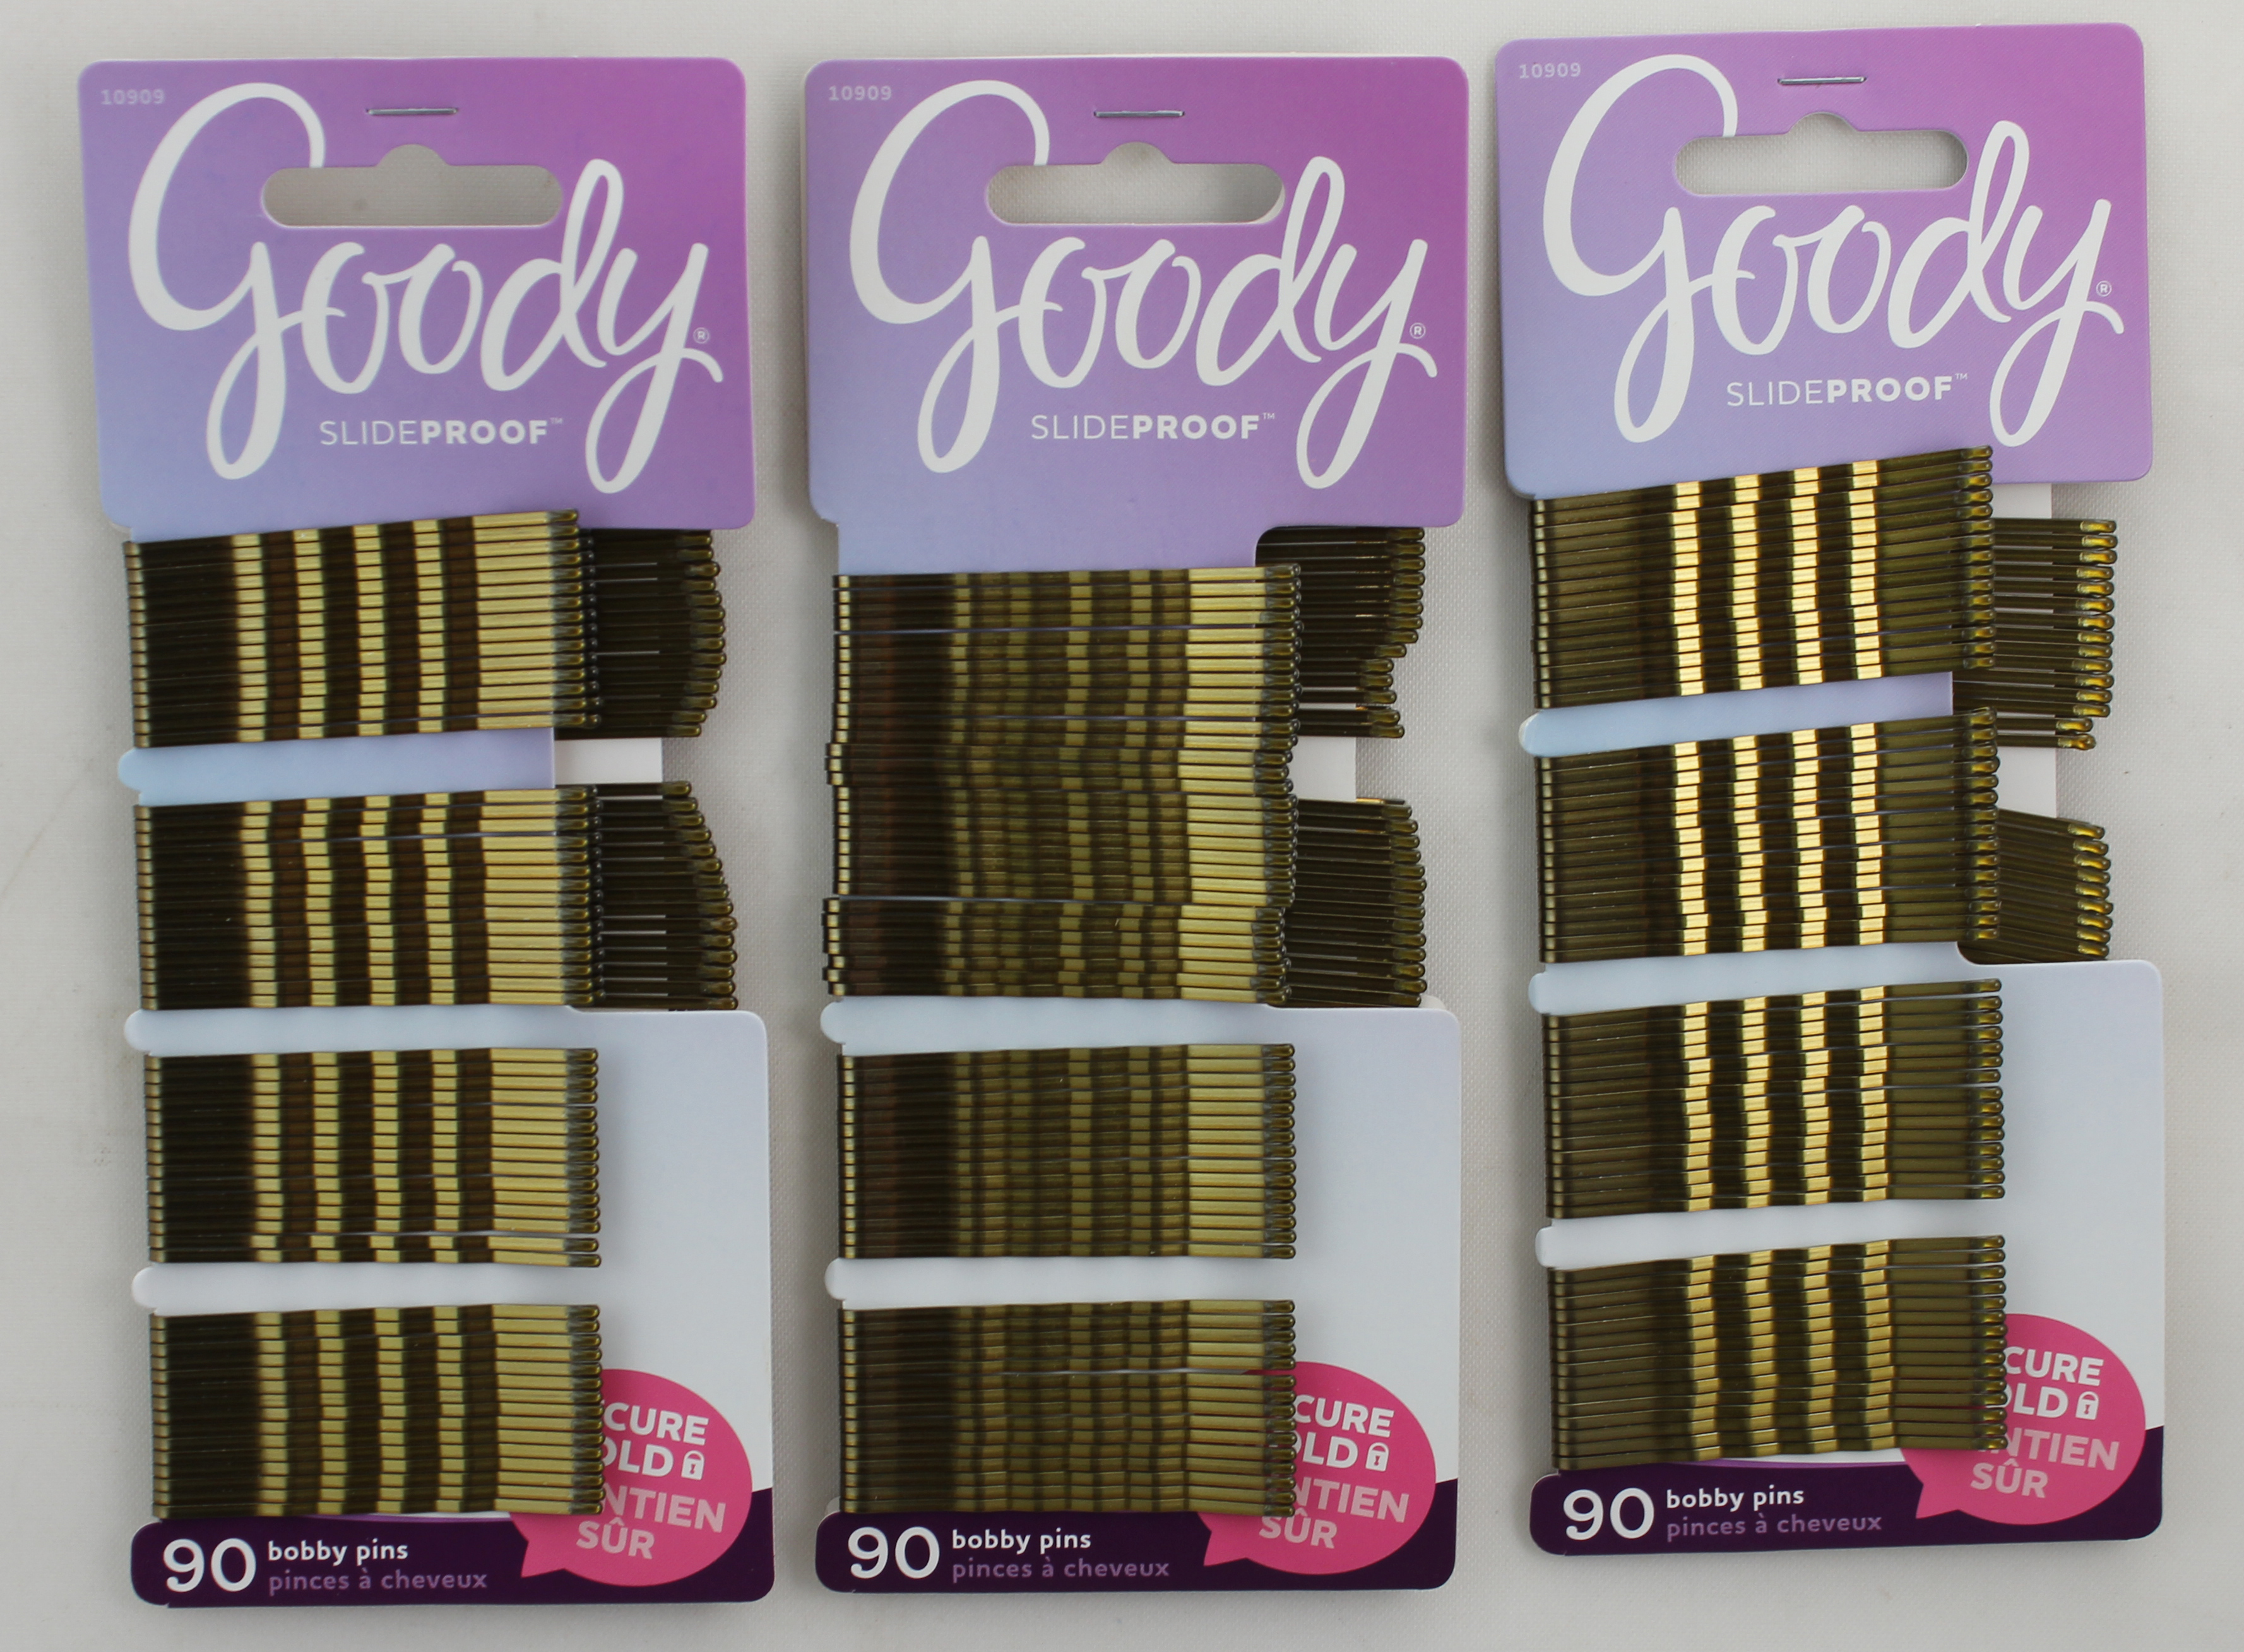 Goody Bobby Pins Slide Proof Blonde 90 CT